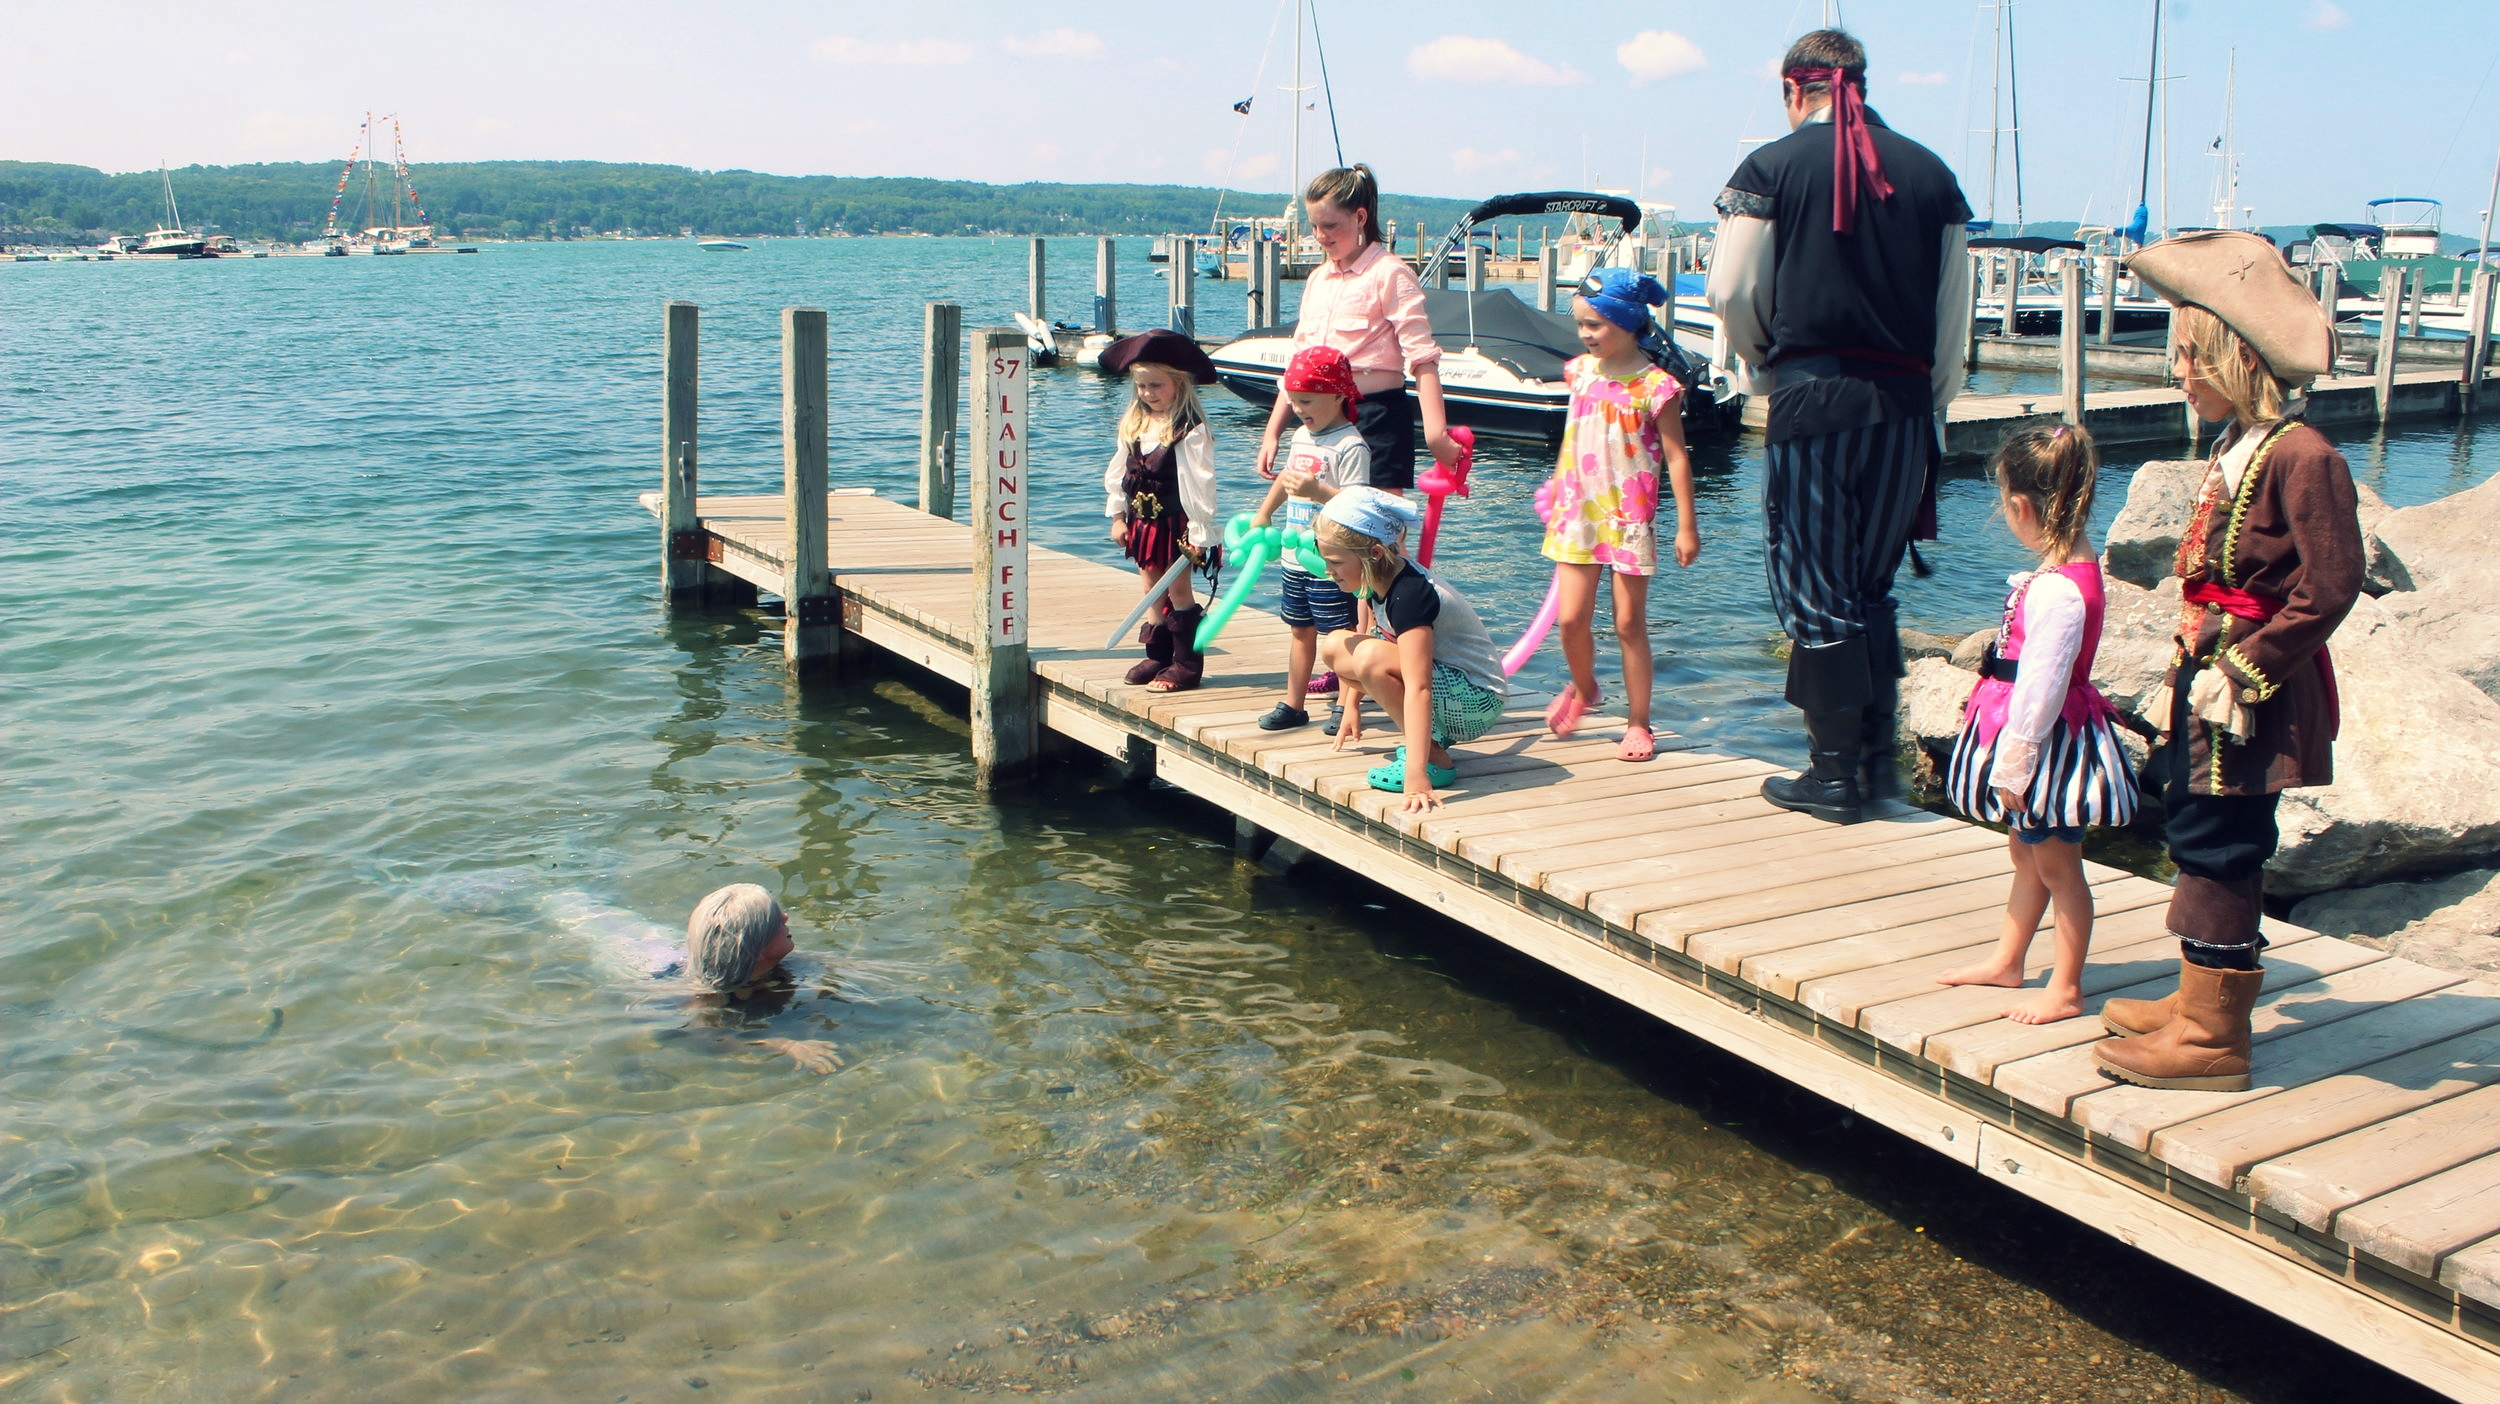 There was a real live mermaid swimming in Lake Michigan during the Boyne City Pirate Festival! Pirates of all ages seemed to be fascinated by Mermaid Phantom's tail!